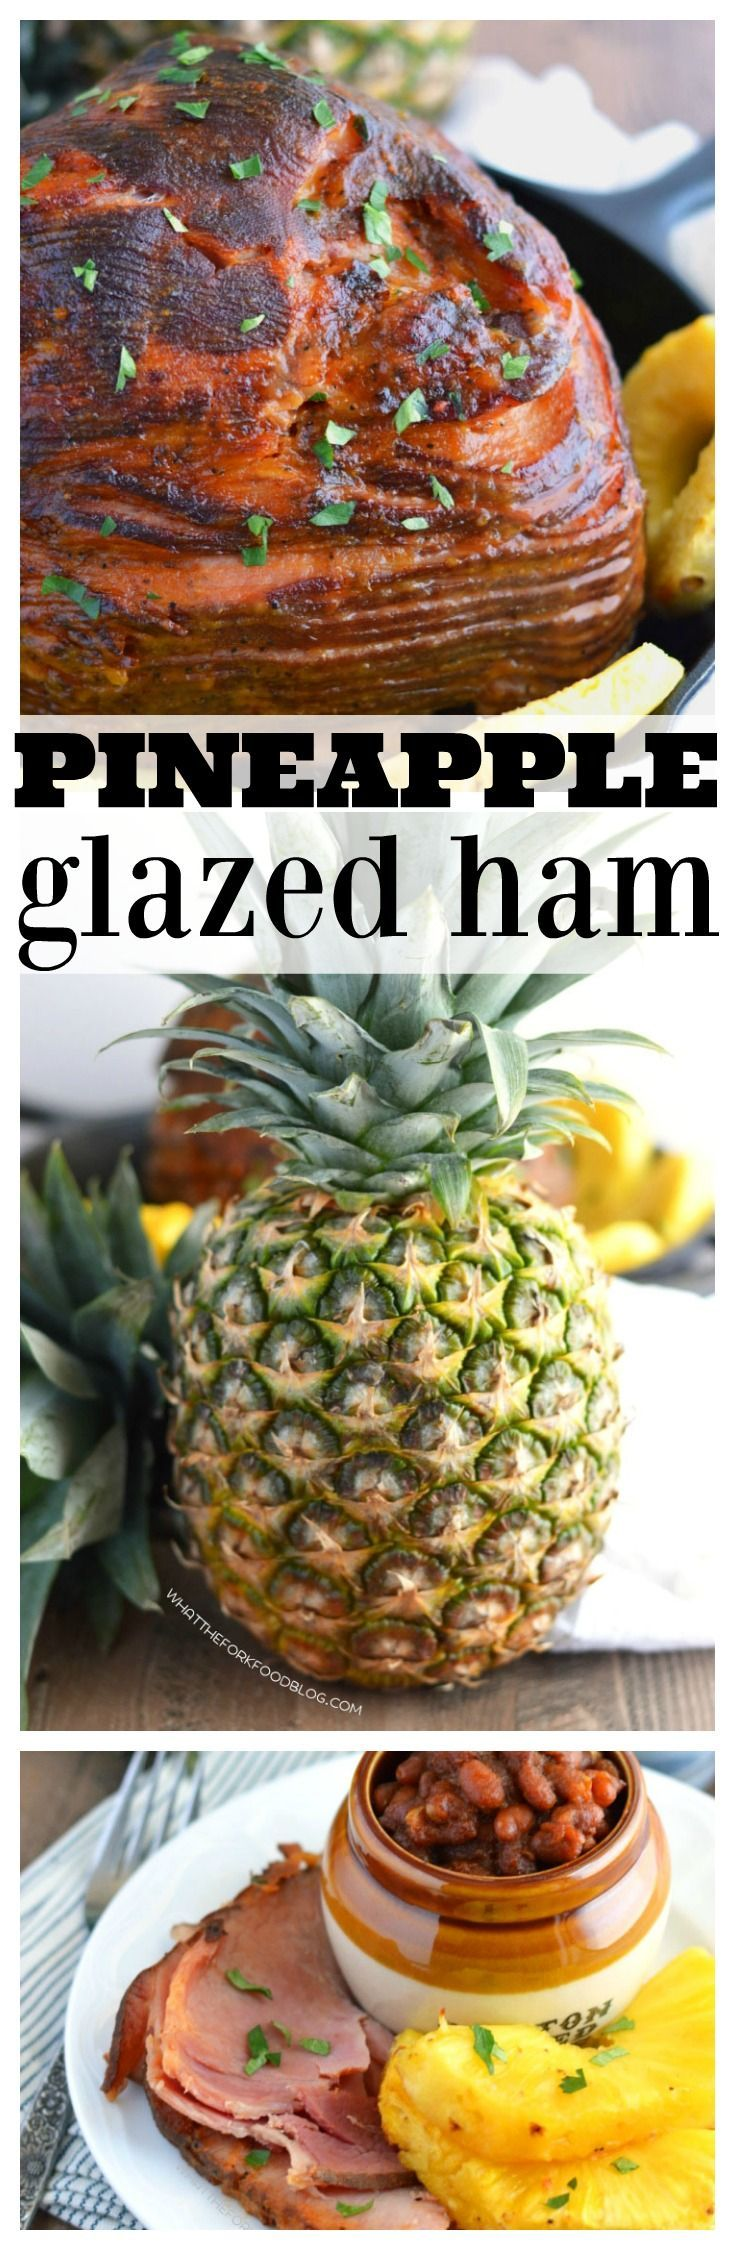 Pineapple Glazed Ham (gluten free and dairy free) from What The Fork Food Blog | whattheforkfoodblog.com | Sponsored by @delmontefresh